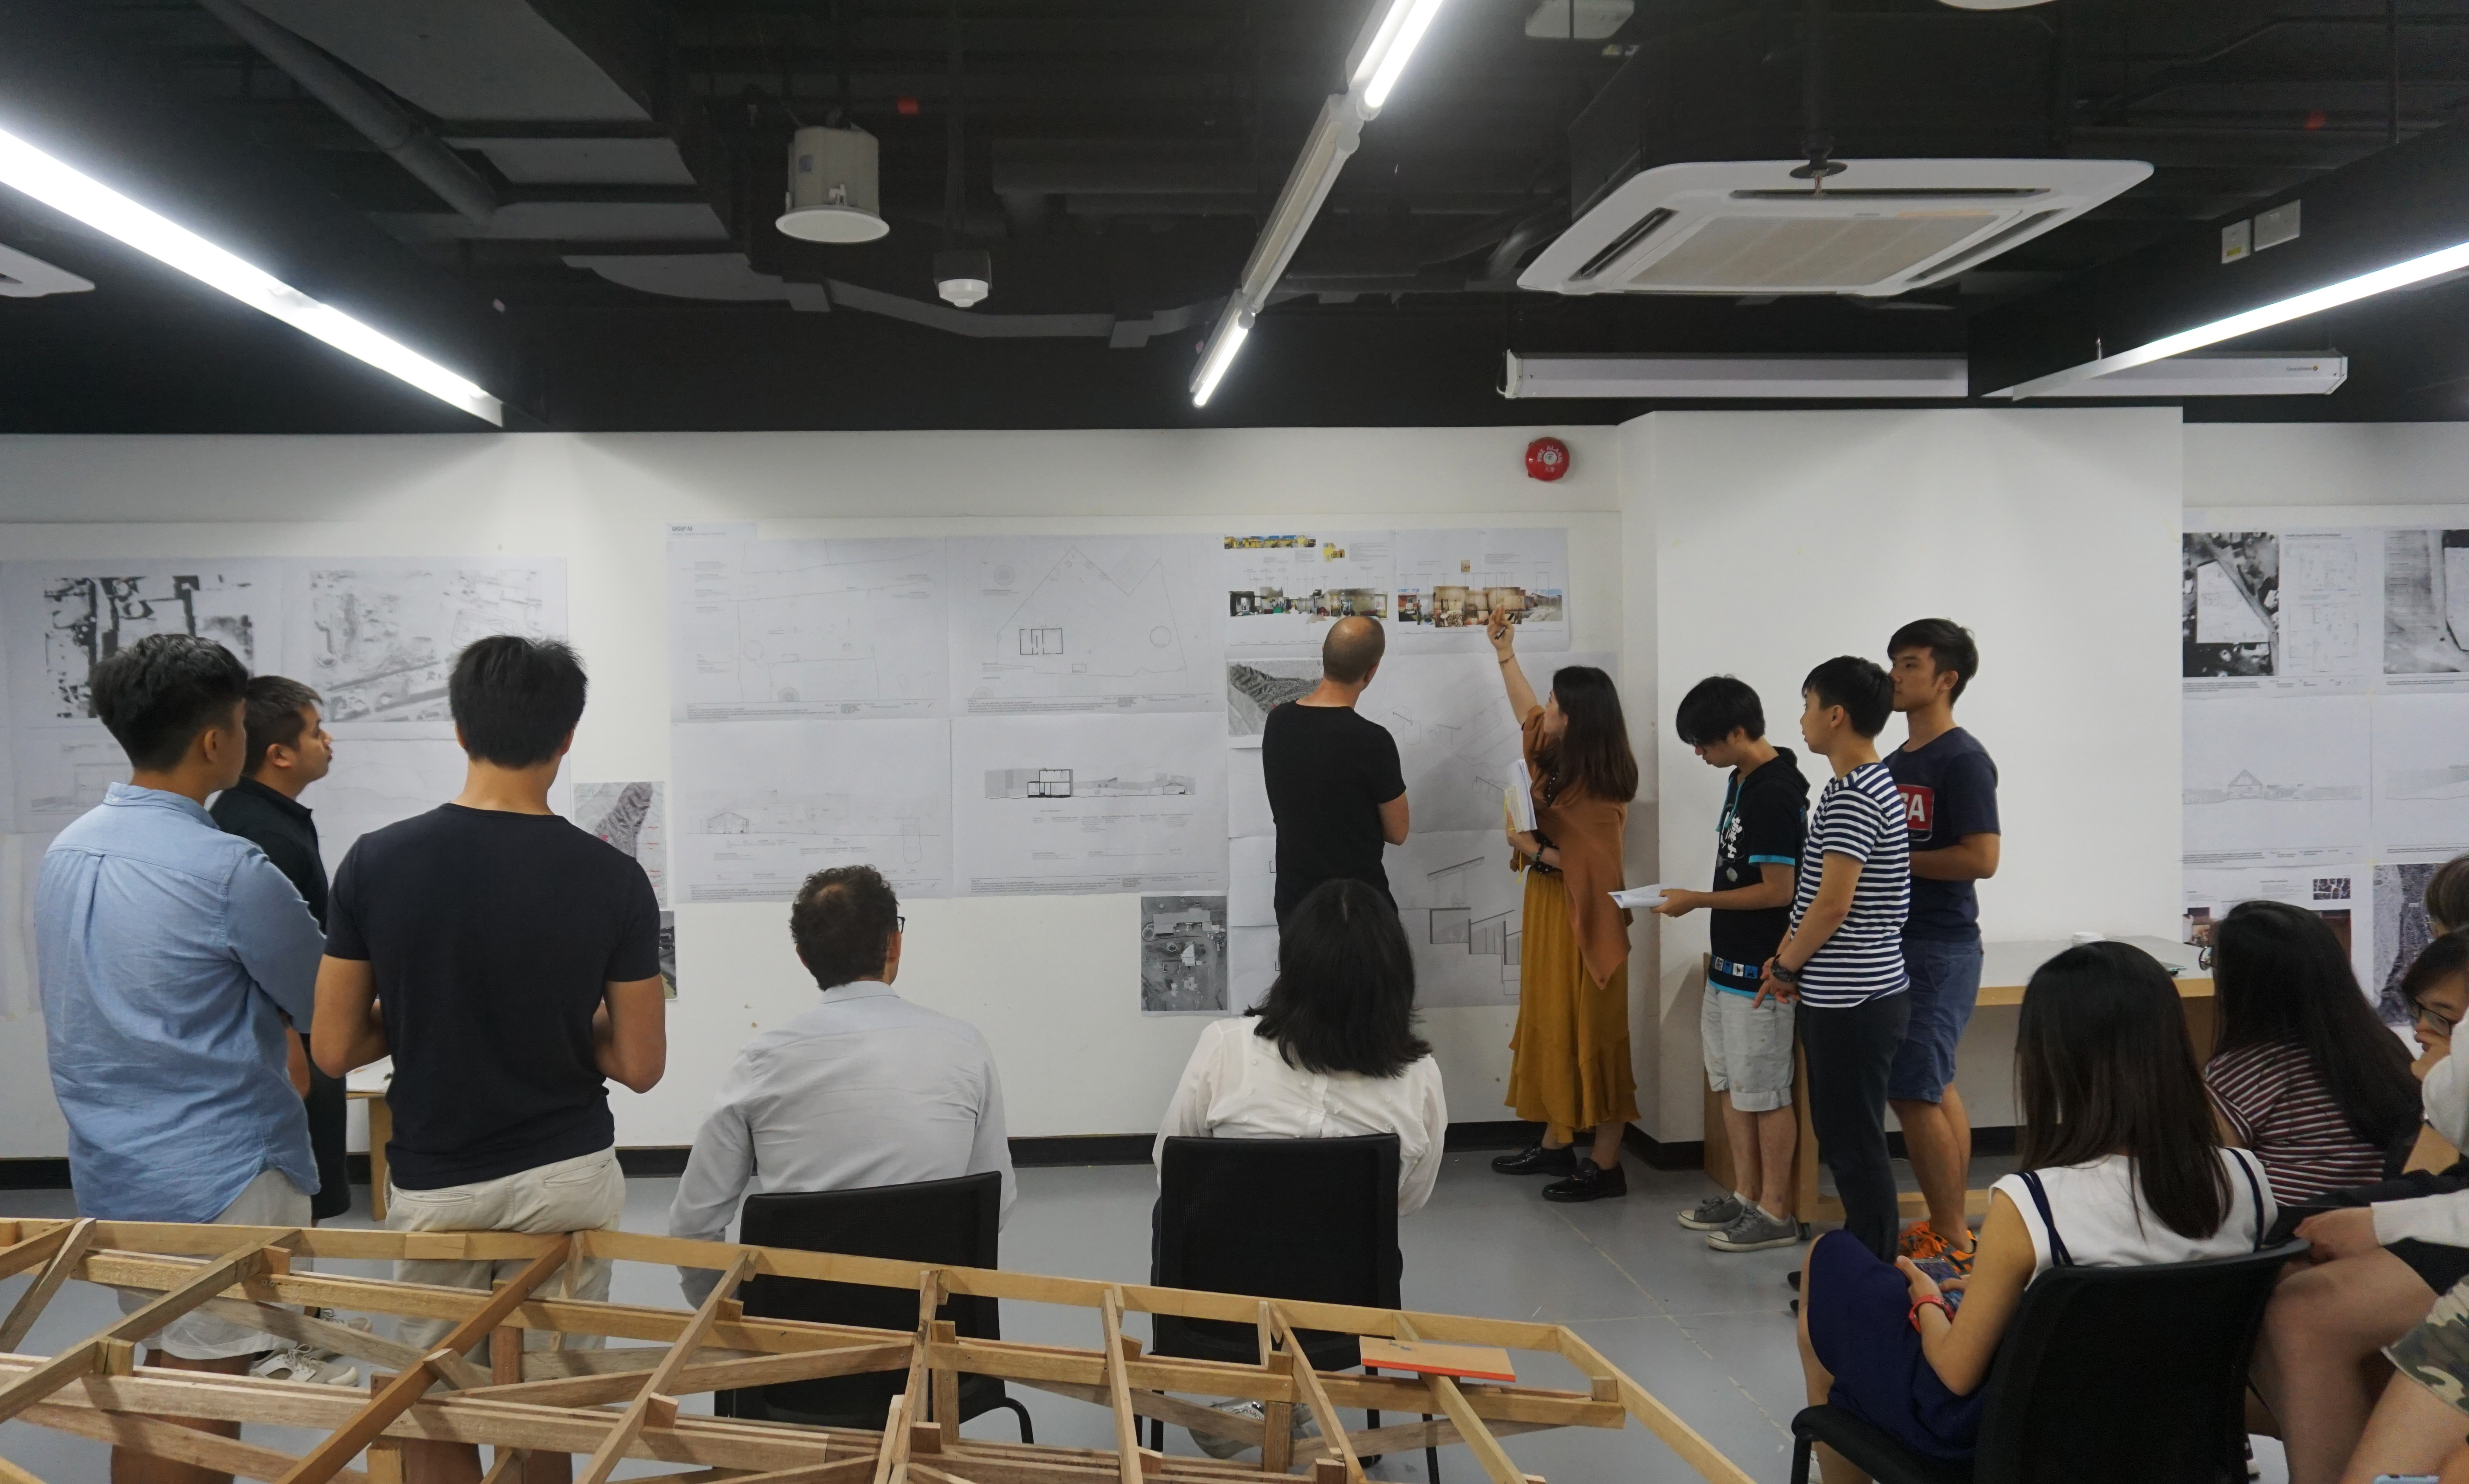 Students gathered together looking at architectural plans and related documents posted on the far wall.